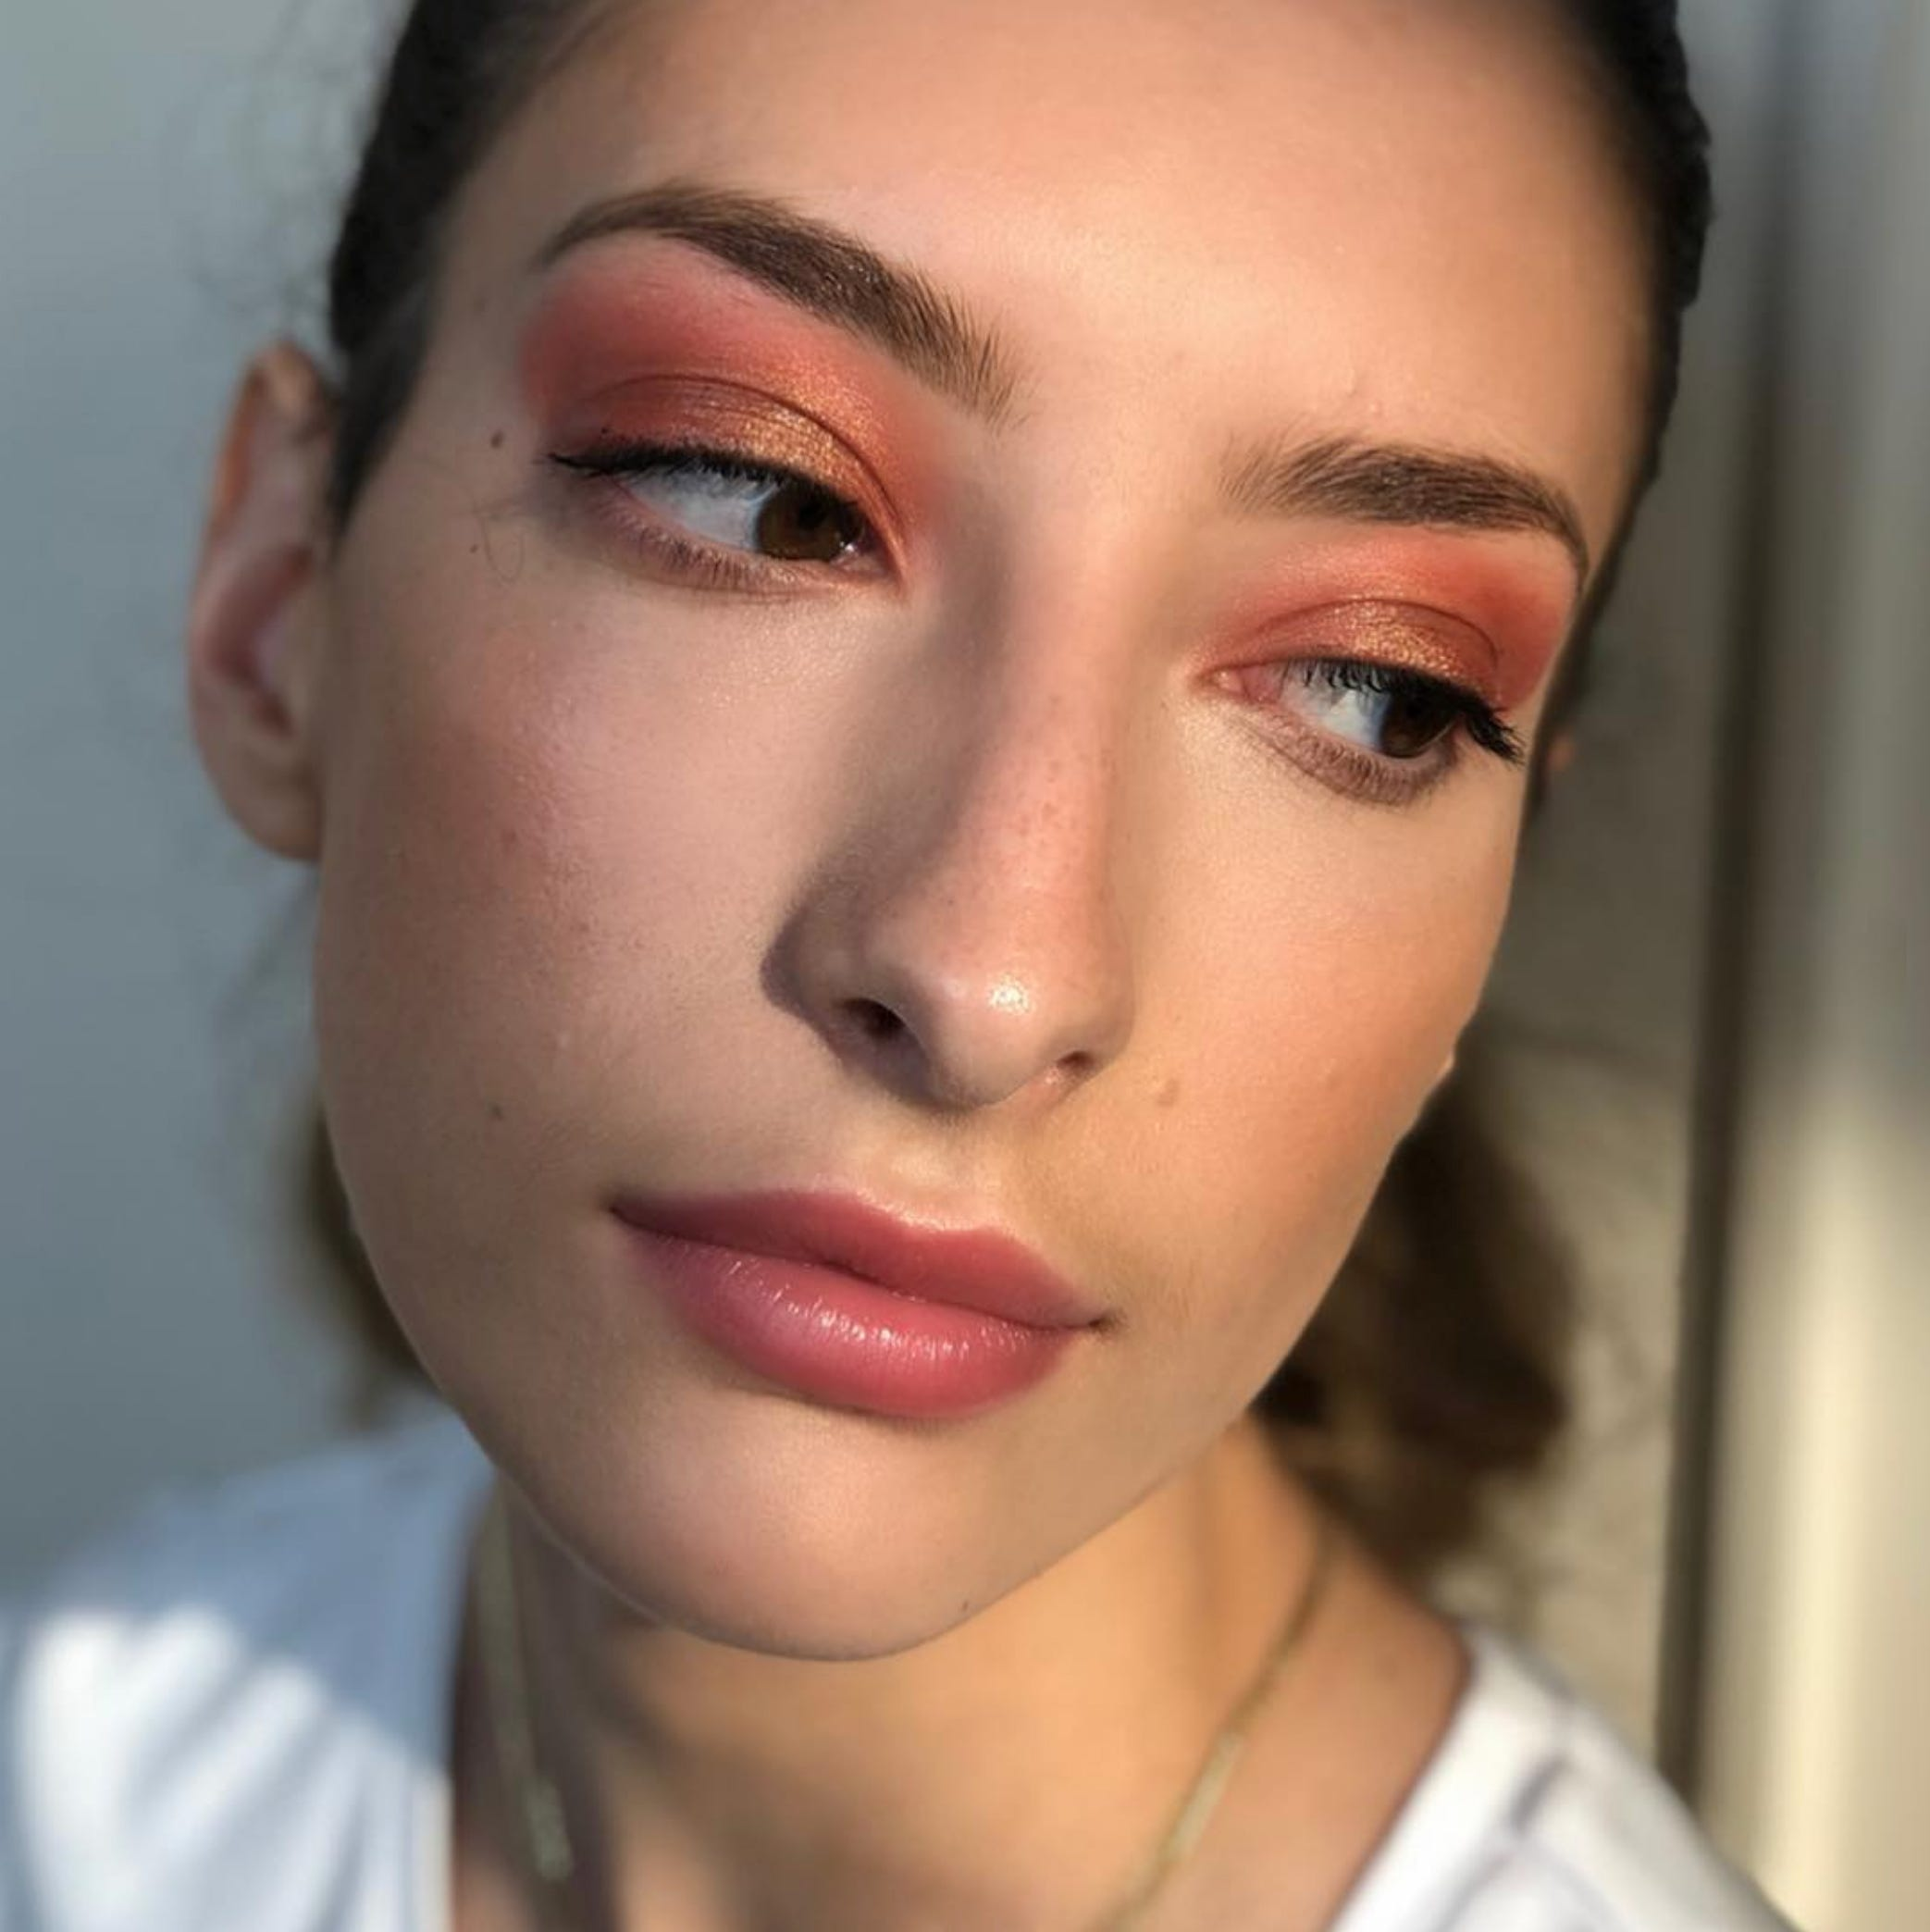 7 Simple Ways To Make Affordable Makeup Look Expensive